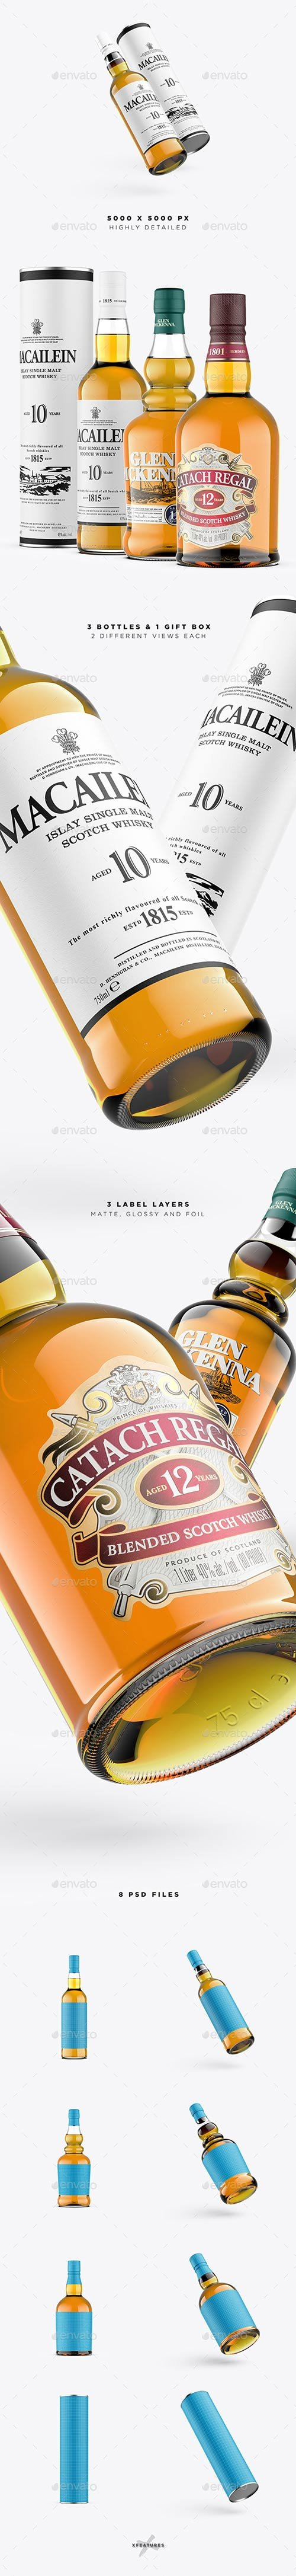 Whisky Mockup - Scotch vol 2 22613336